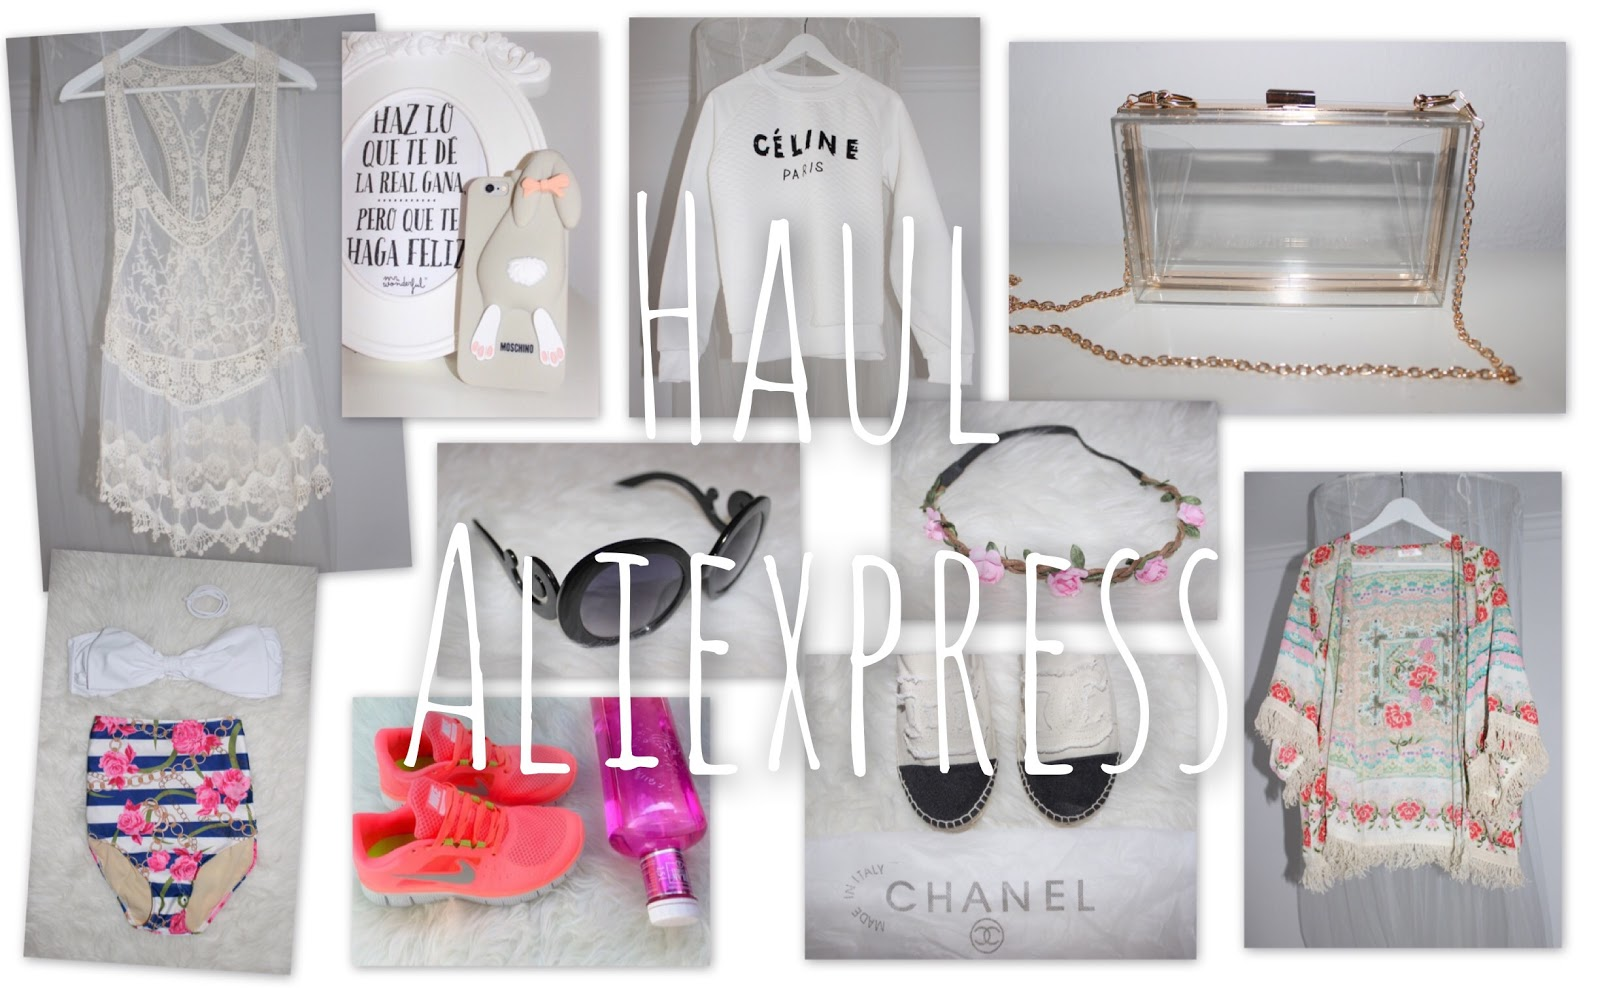 Haul_Aliexpress_The_Pink_Graff_01